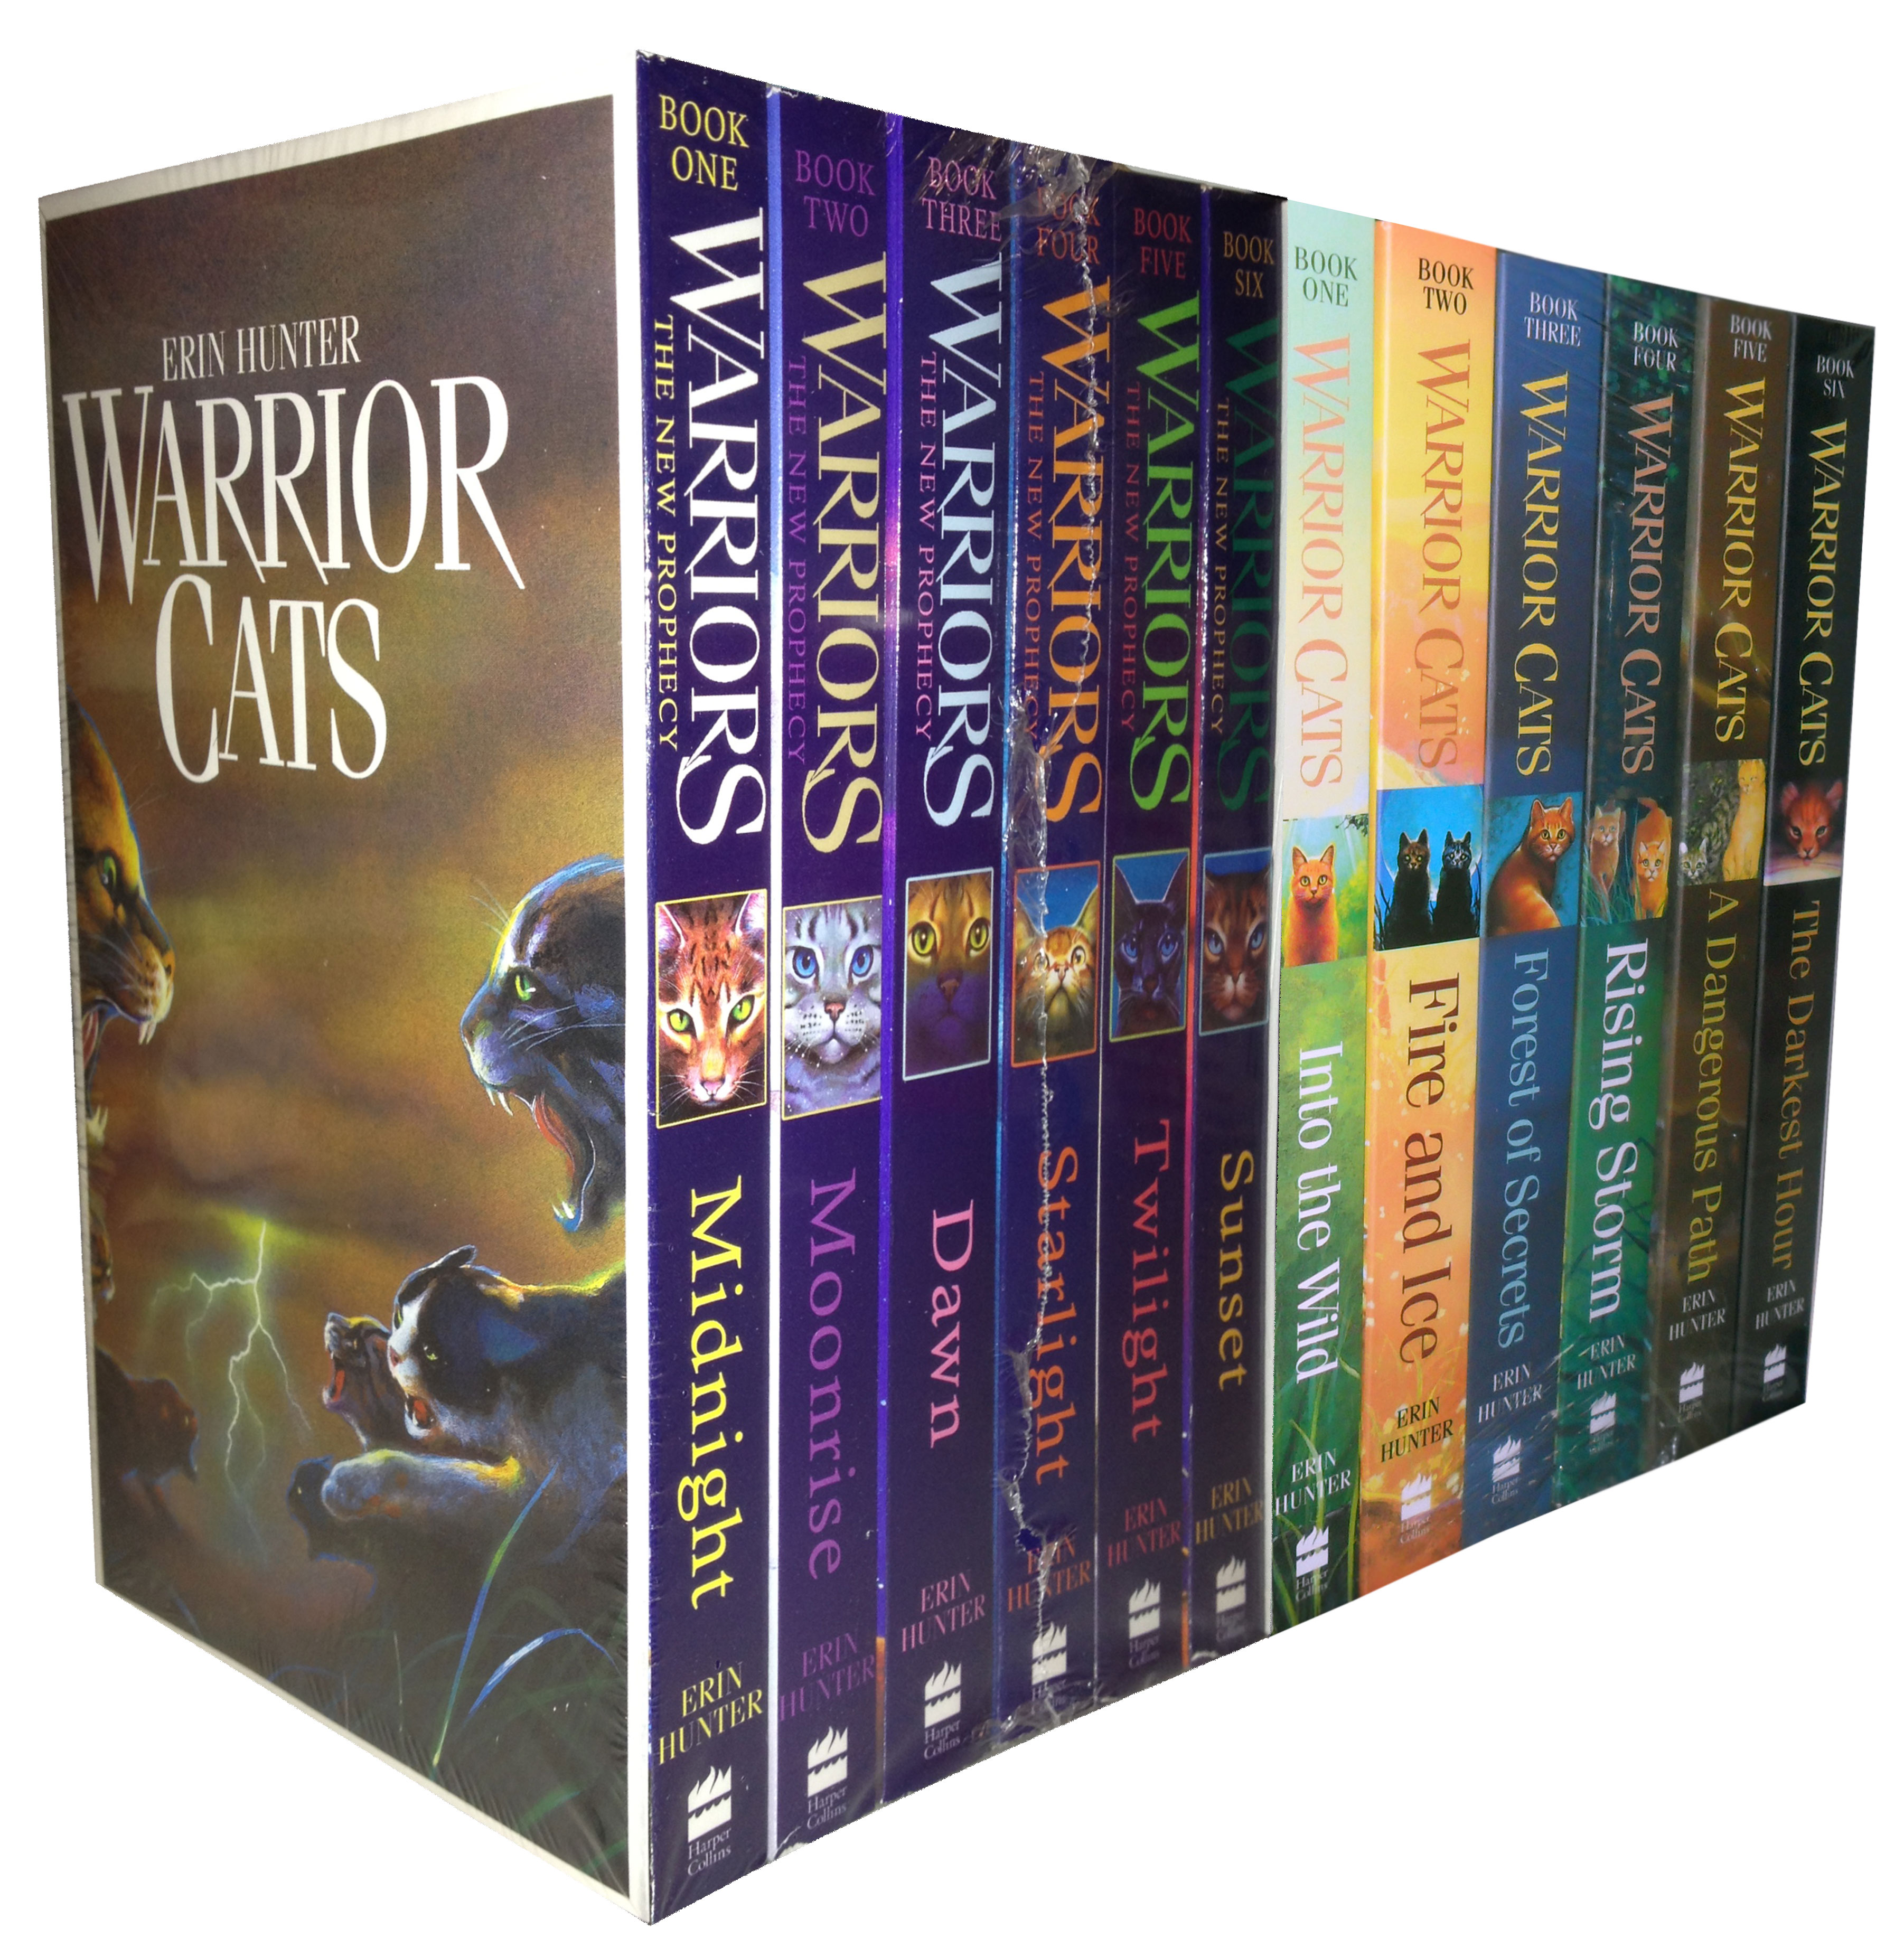 Warriors Book Series Quizzes: Warrior Cats Collection Erin Hunter 12 Books Set The New